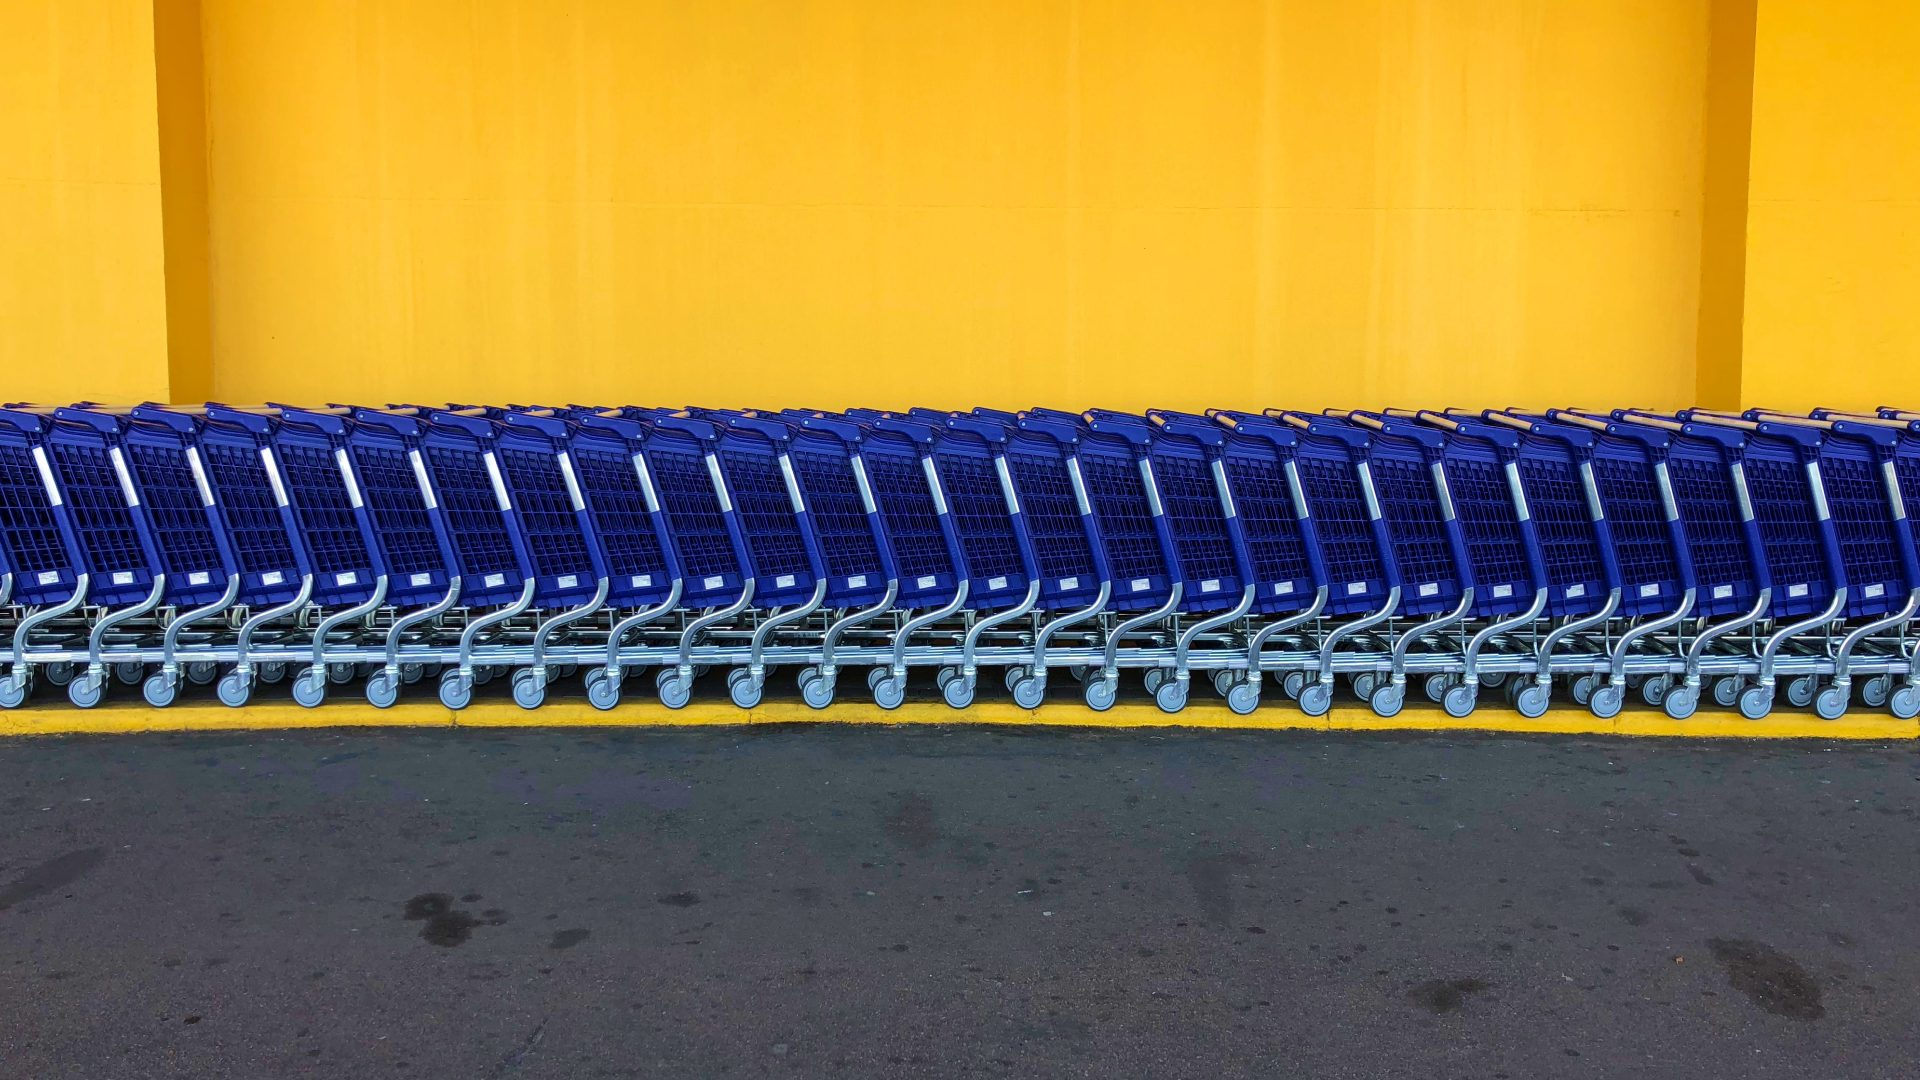 What's in Store When Retailers Fully Leverage AI?